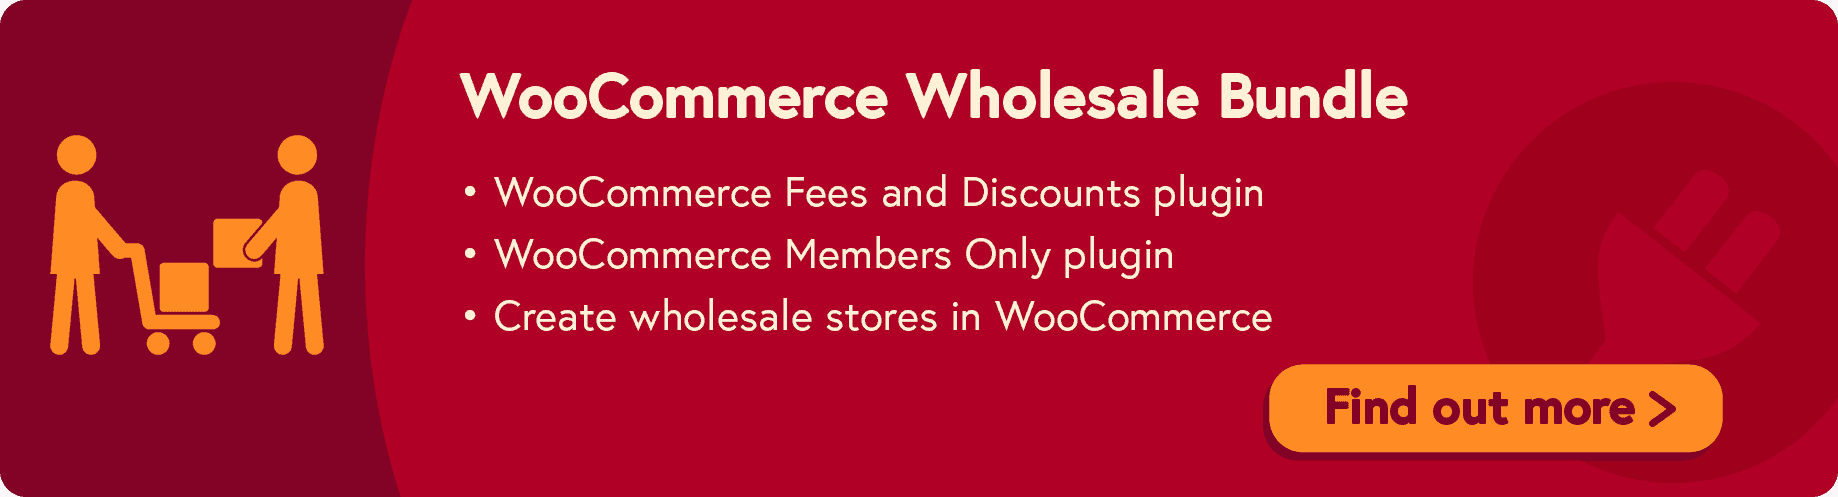 WooCommerce Wholesale Plugin Bundle